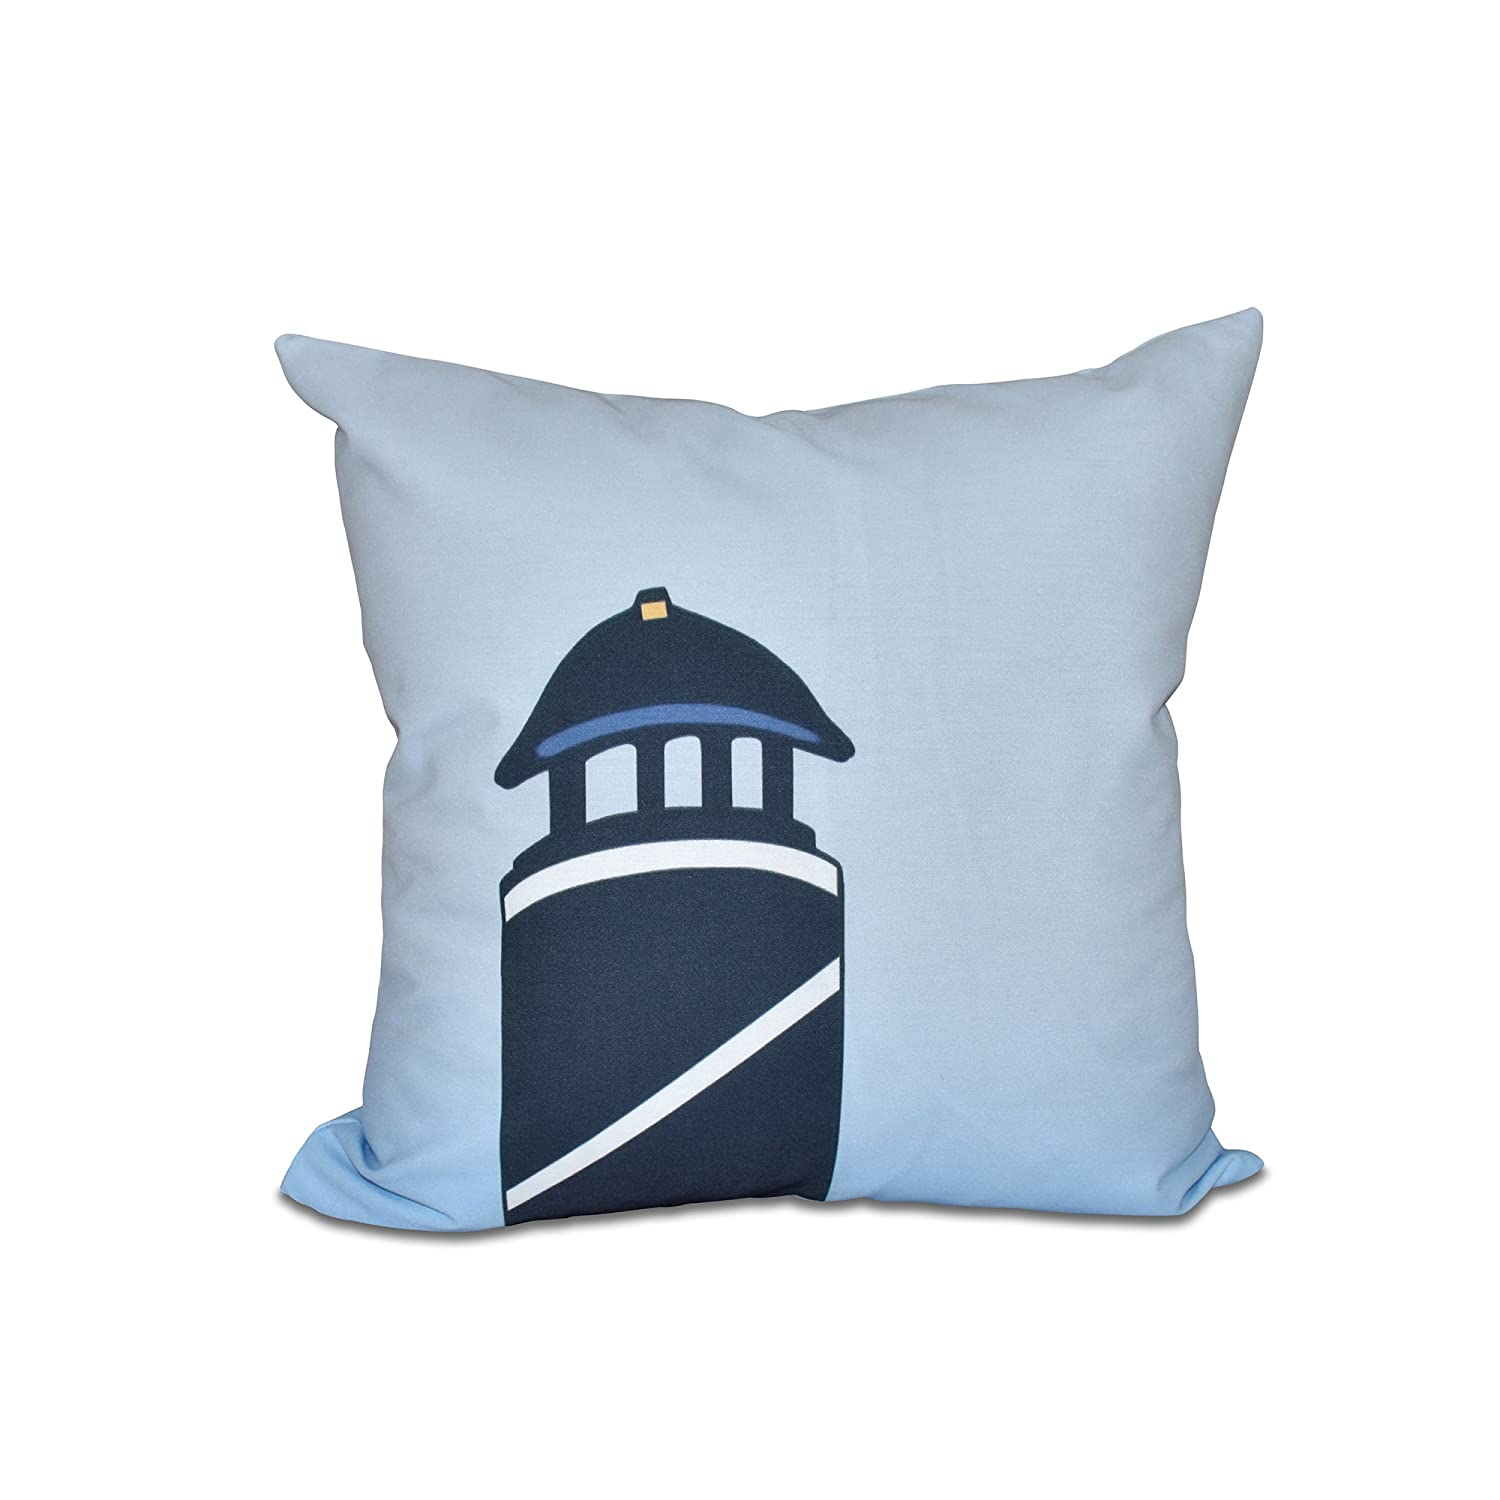 Navy Blue Geometric Print Pillow Safe Harbor E by design 16 x 16-inch Navy one